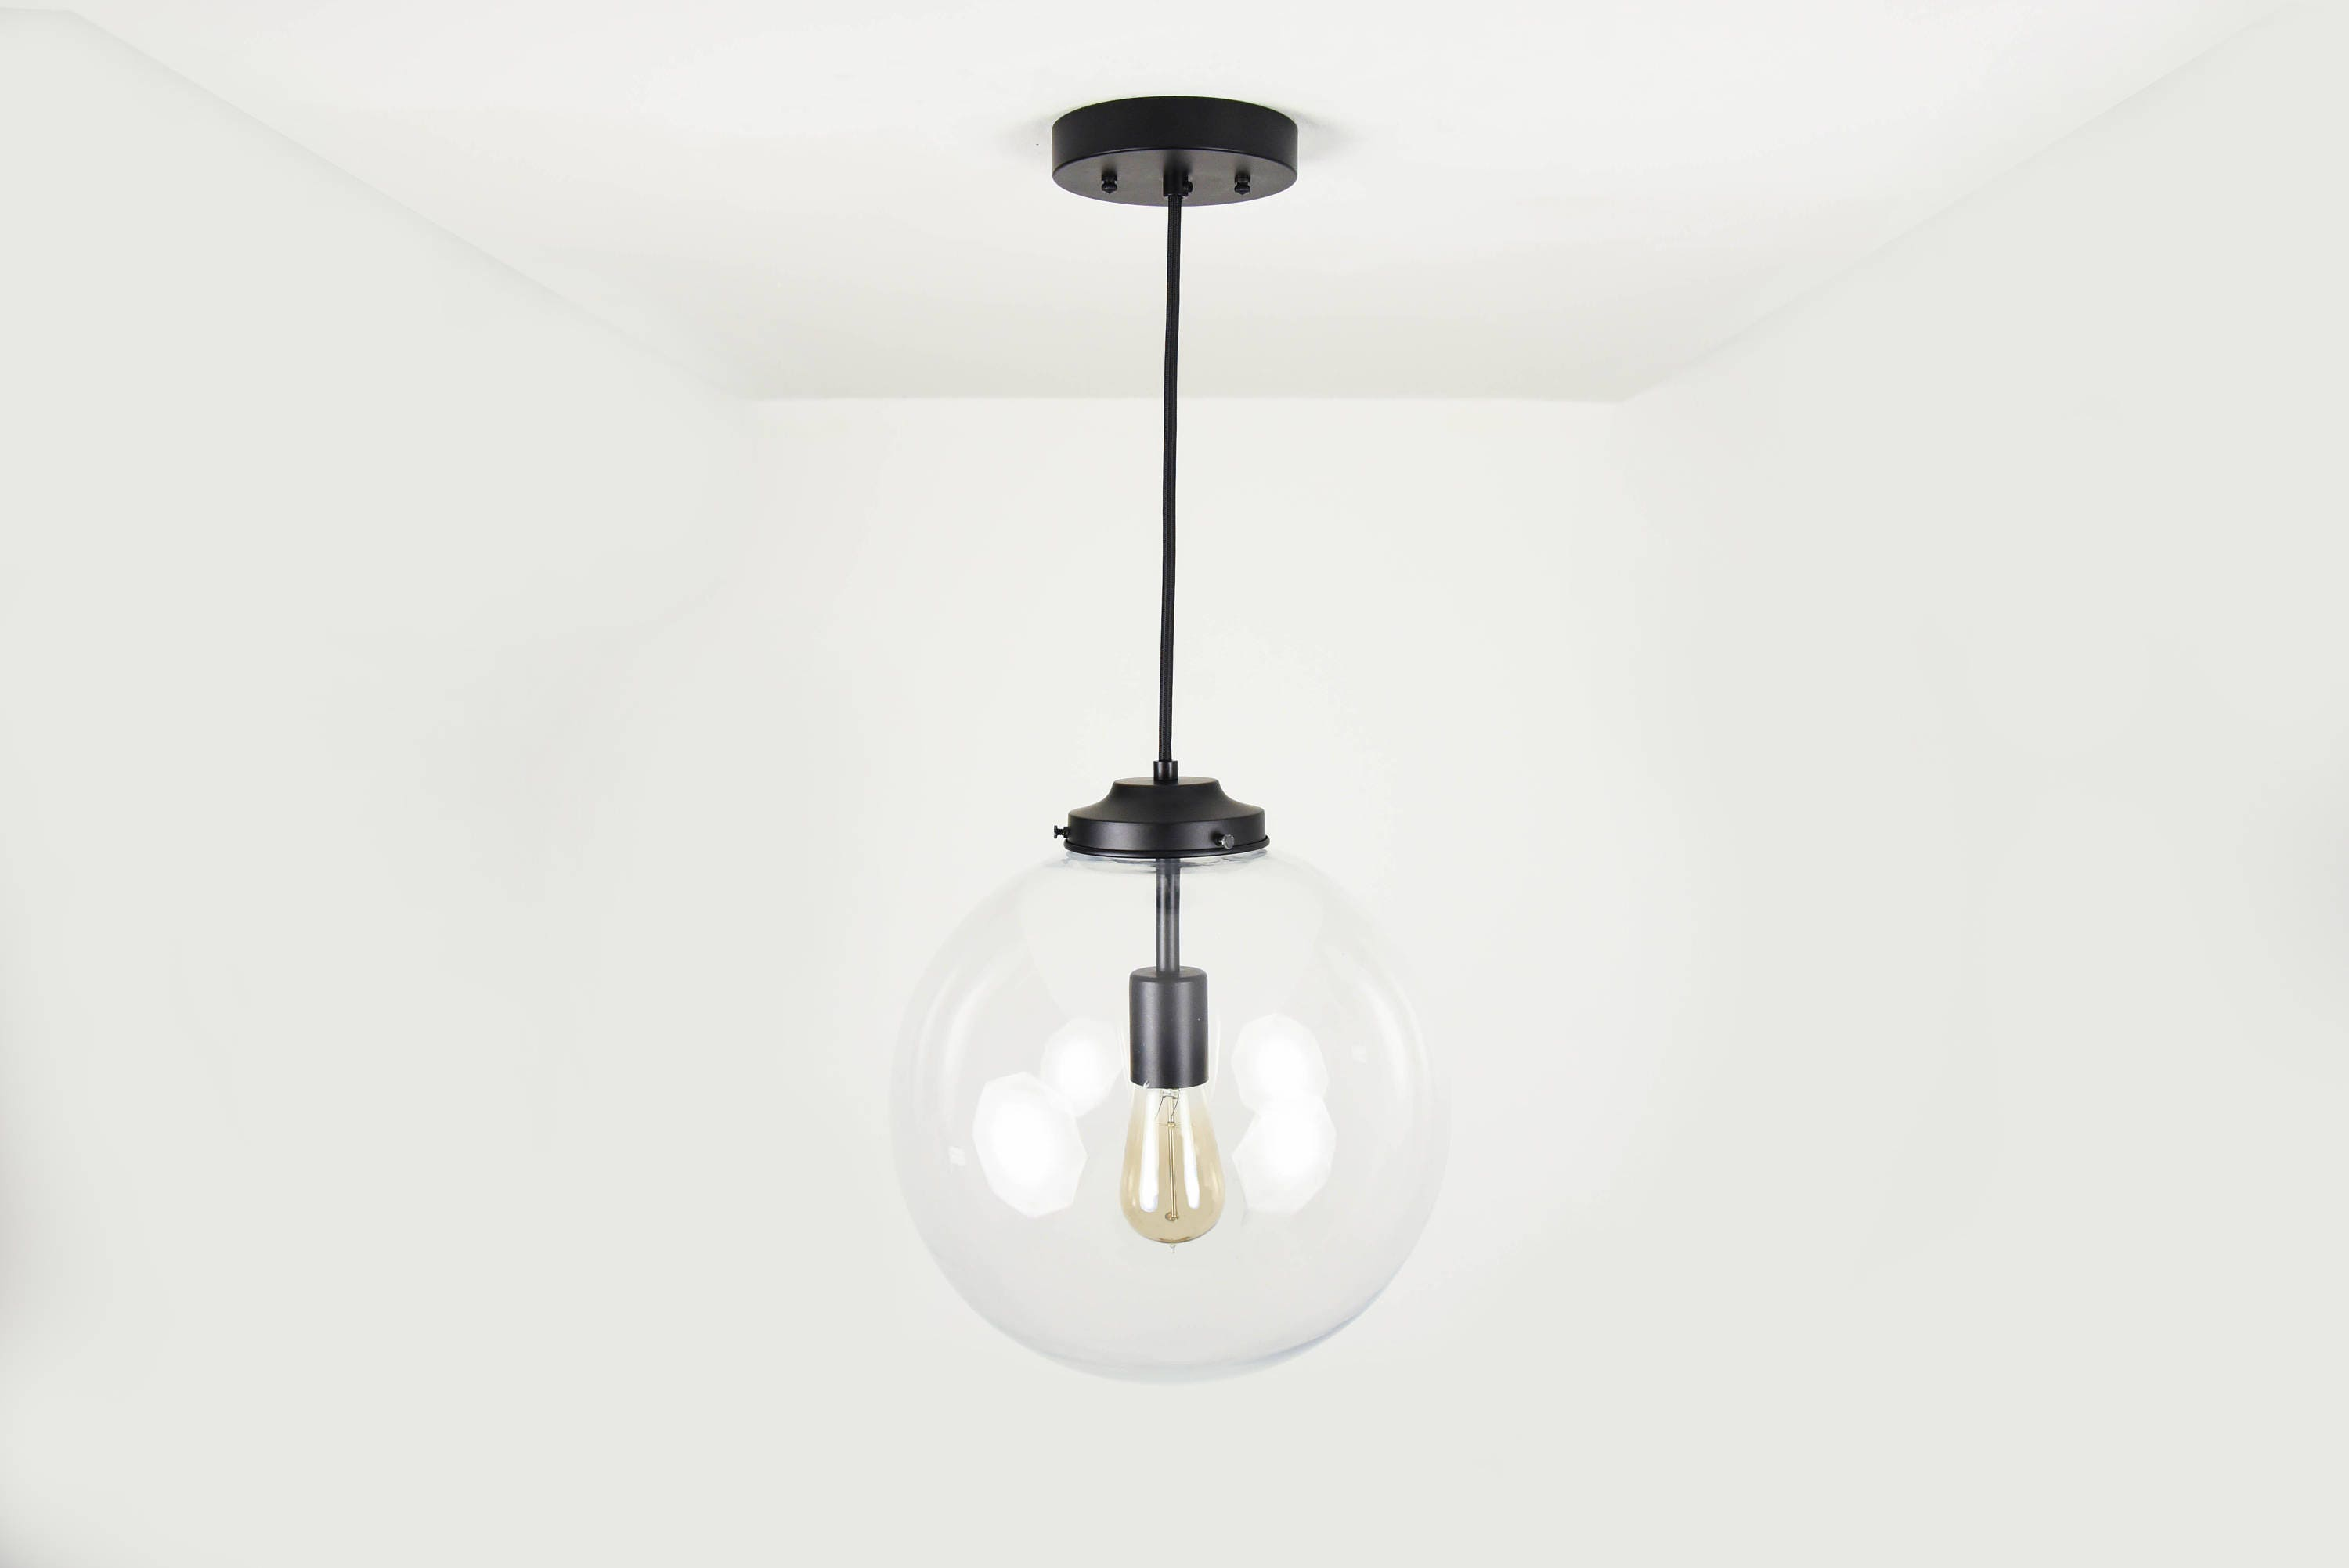 Matte Black Modern Pendant Lighting With Clear Glass Globe